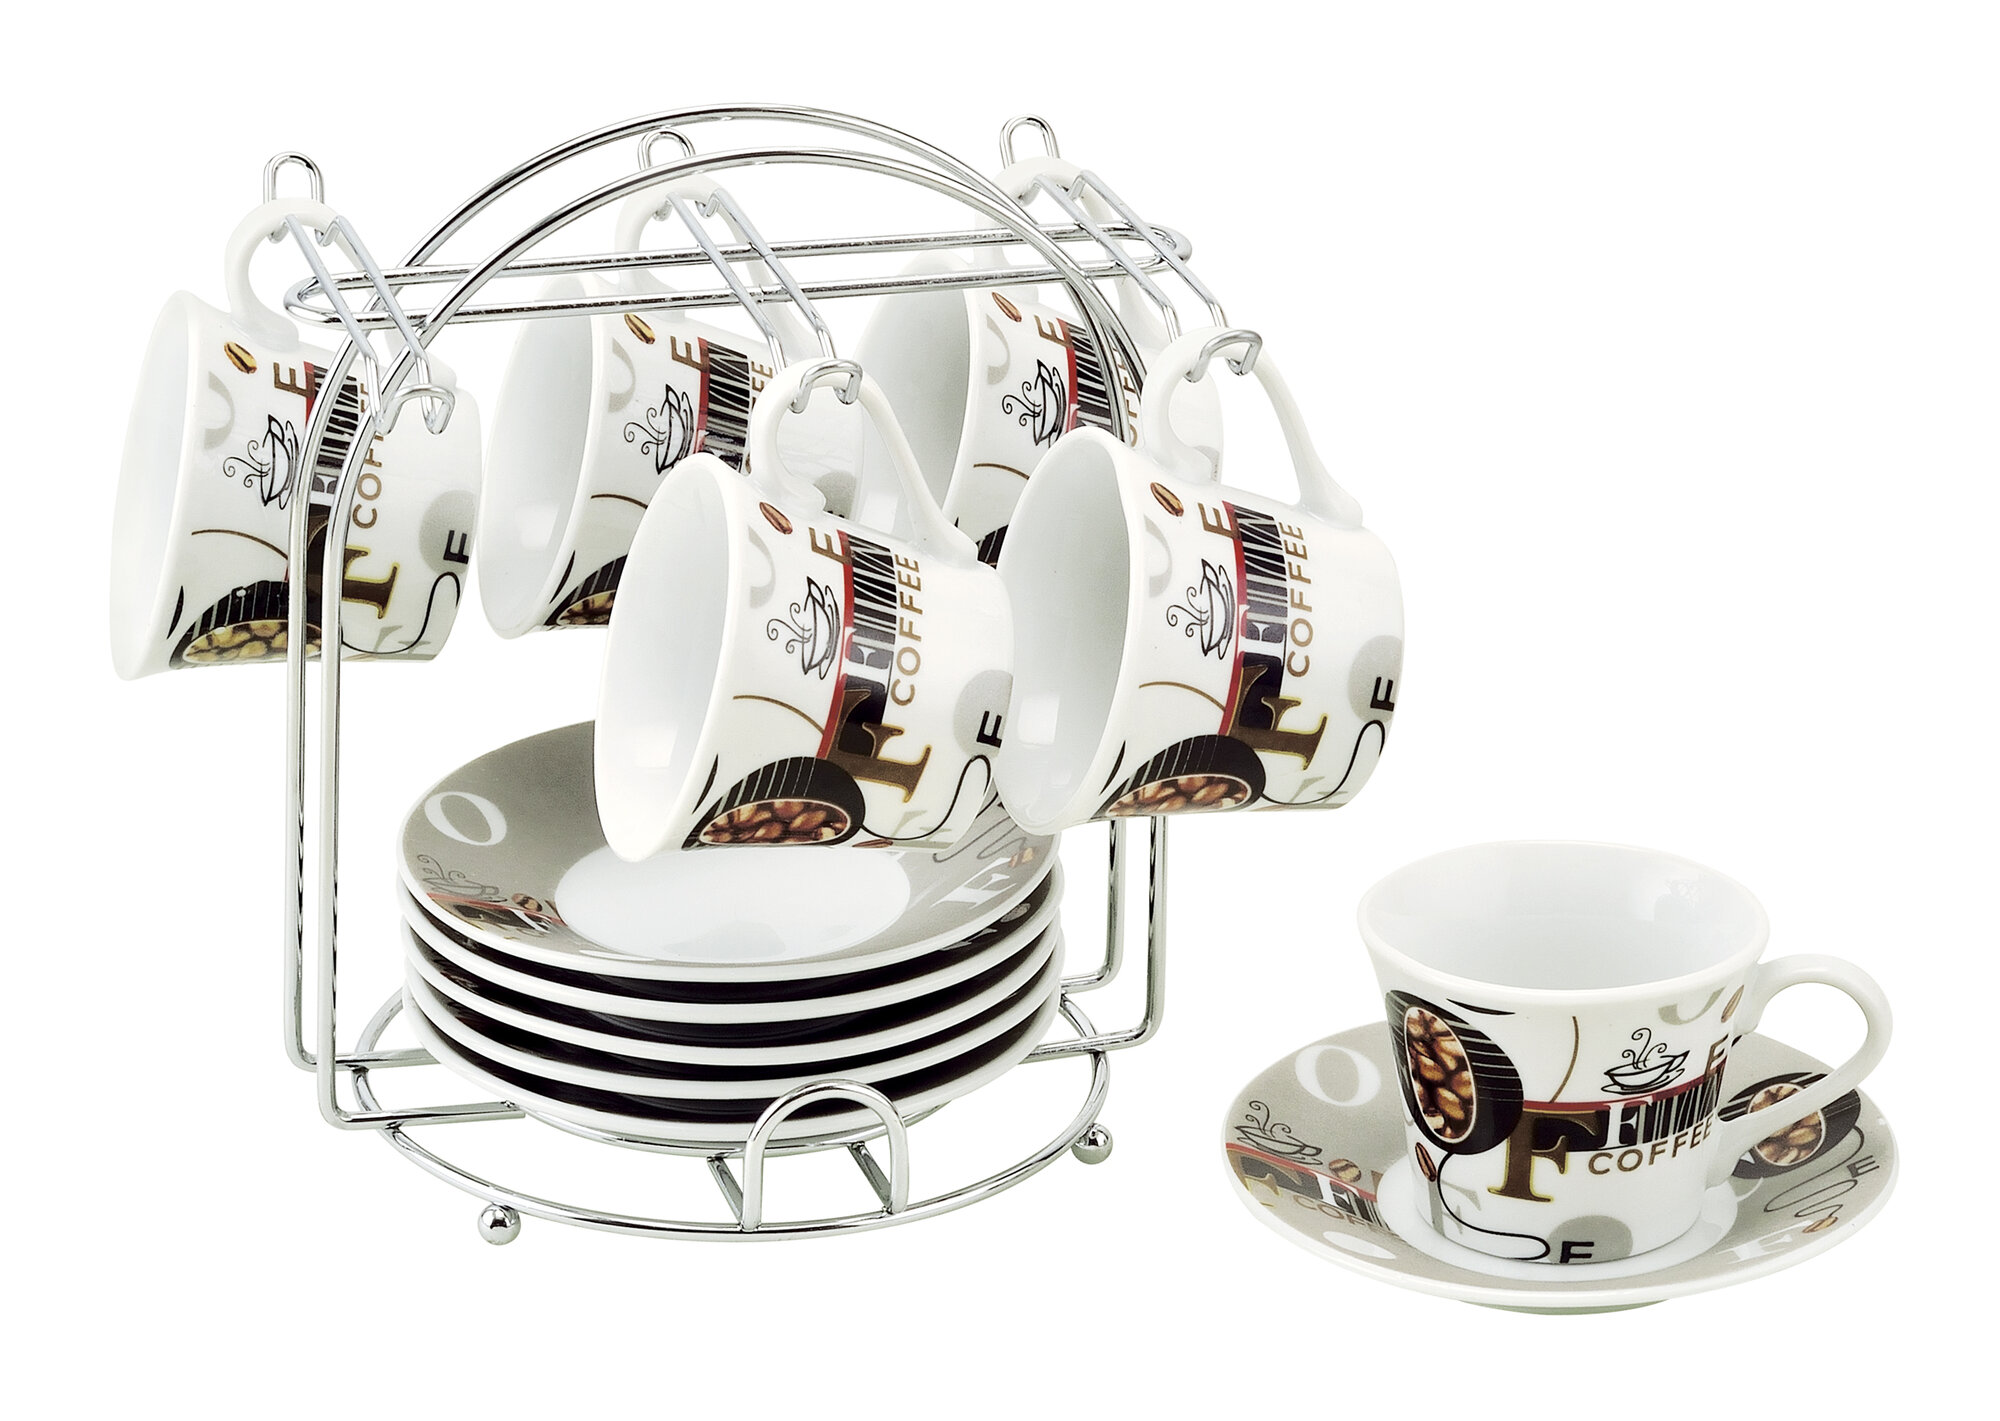 Lorren Home Trends Espresso Cup and Saucer Set with Metal ...